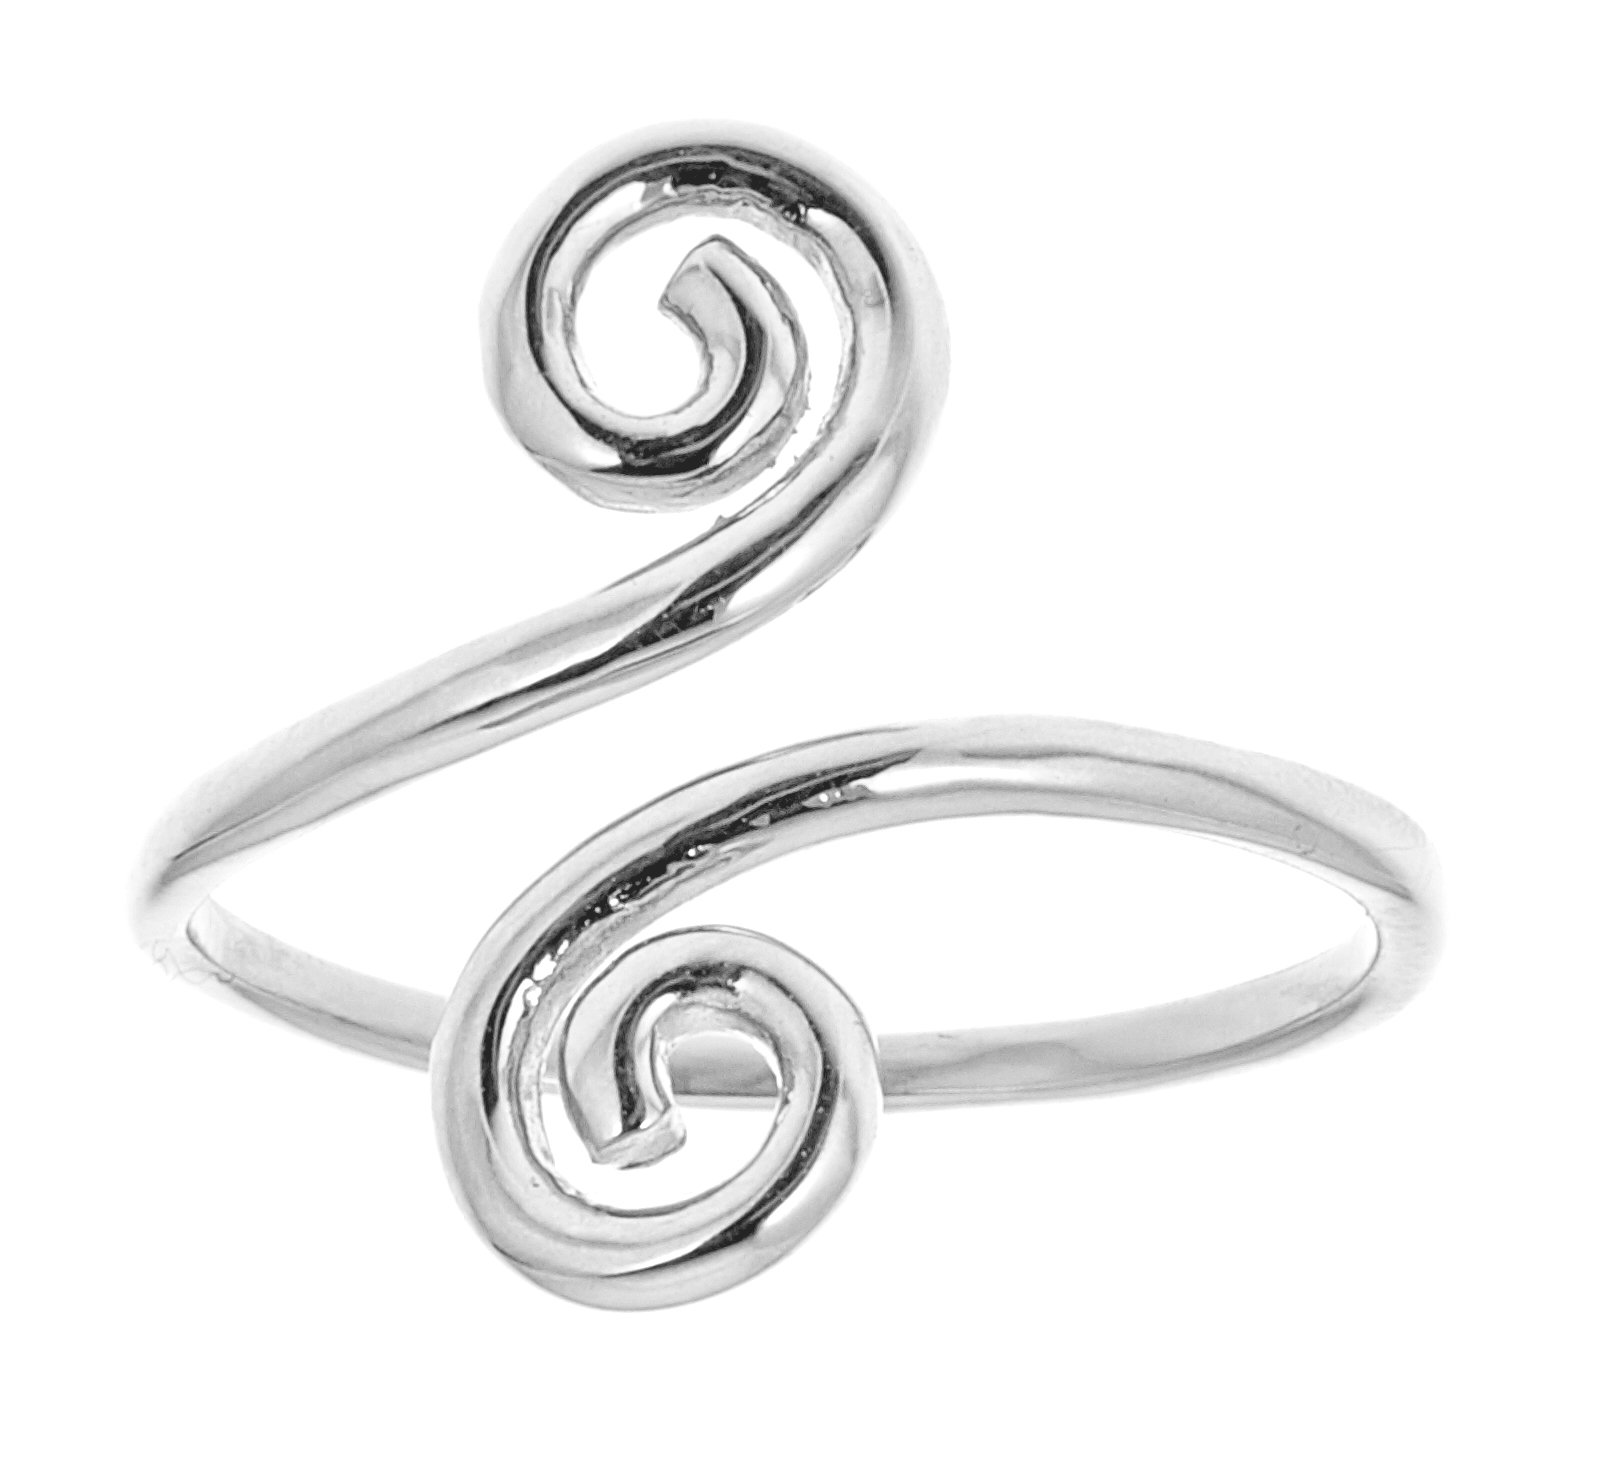 14k Solid White Gold Swirl Adjustable Ring or Toe Ring